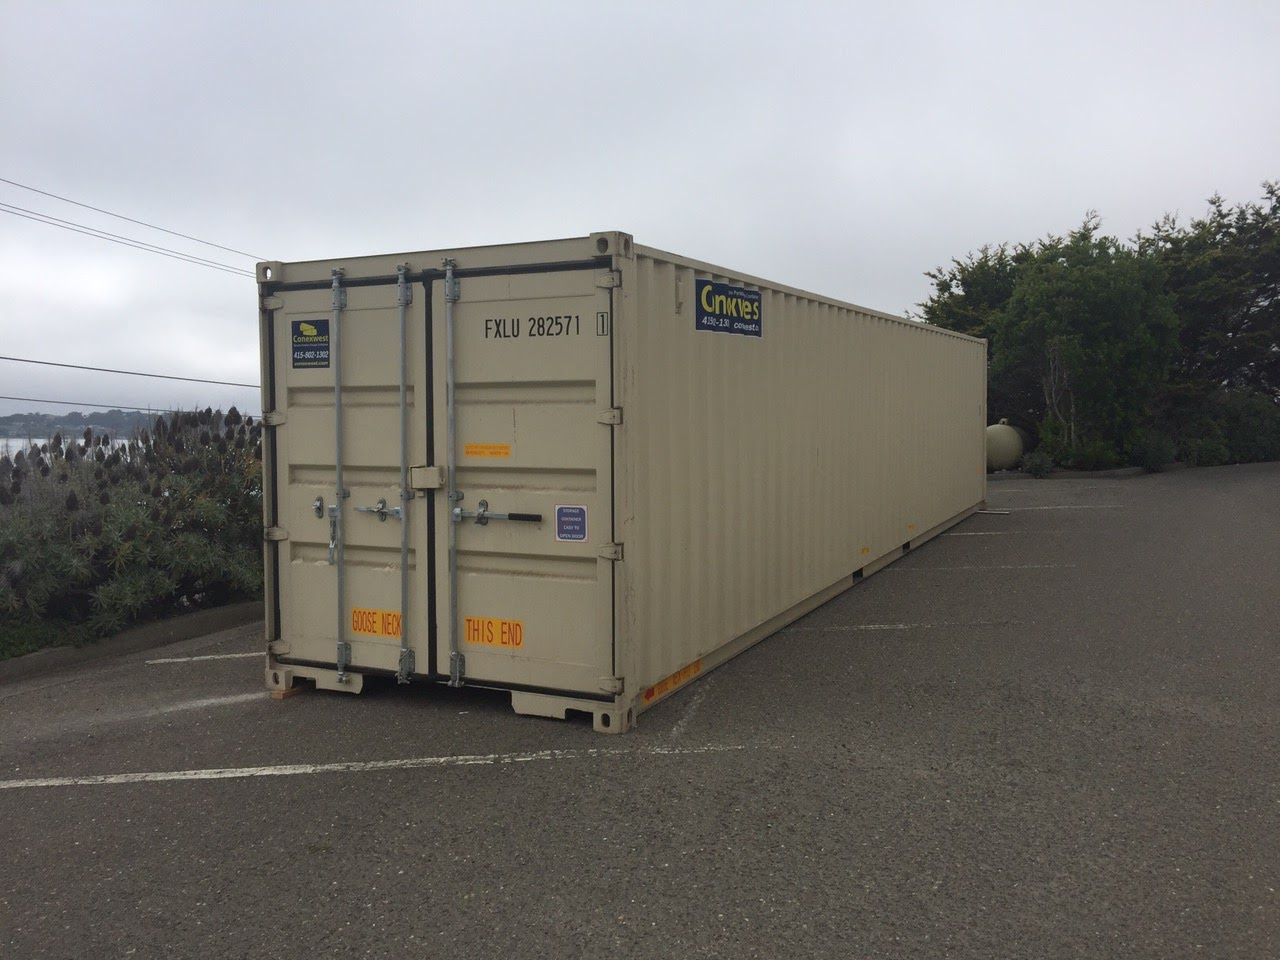 Shipping container on the side of the road with cargo doors